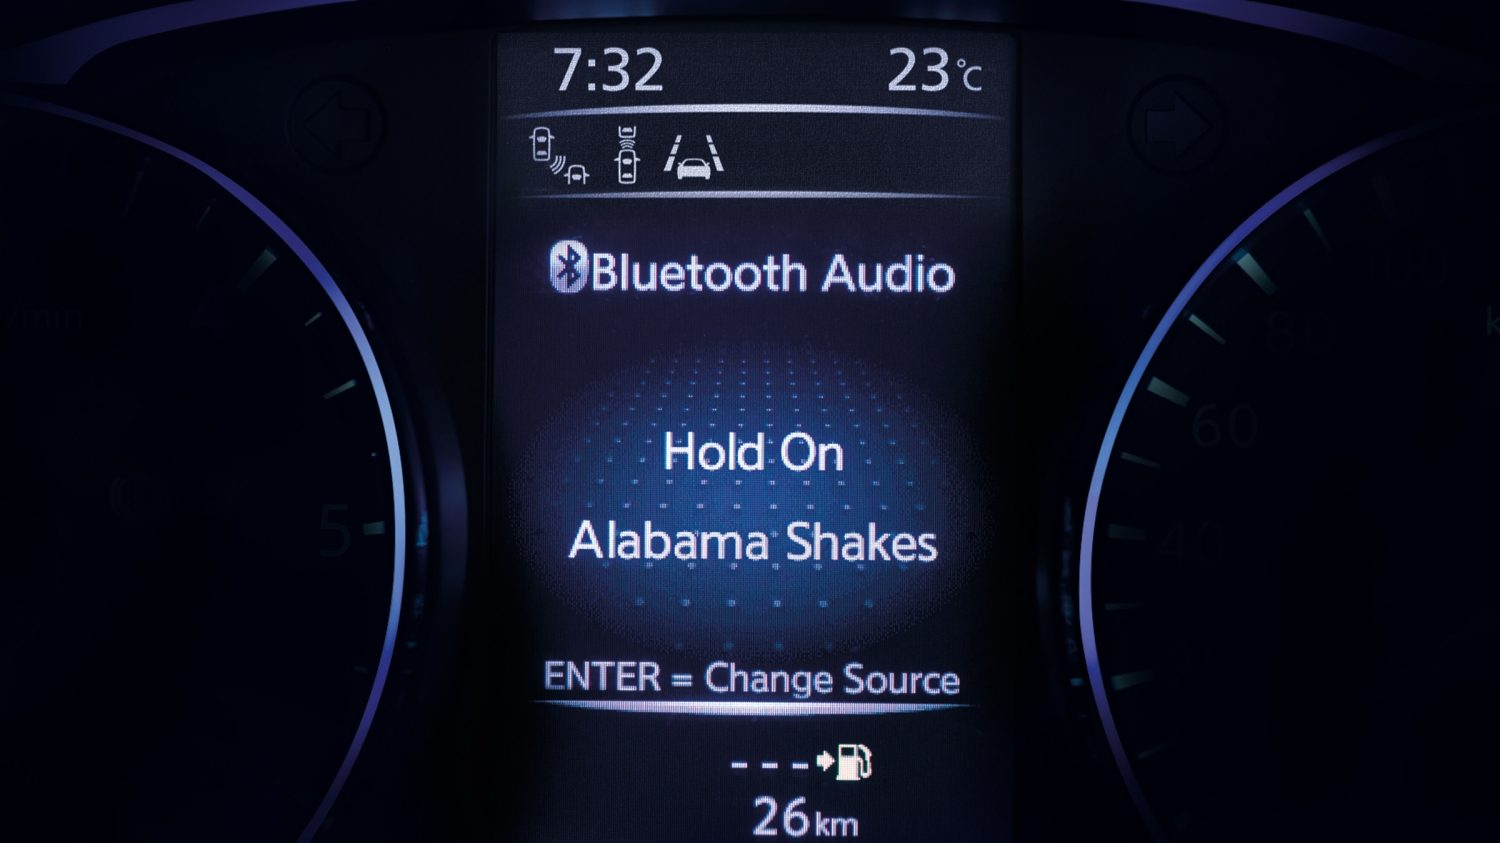 Qashqai TFT screen Bluetooth audio